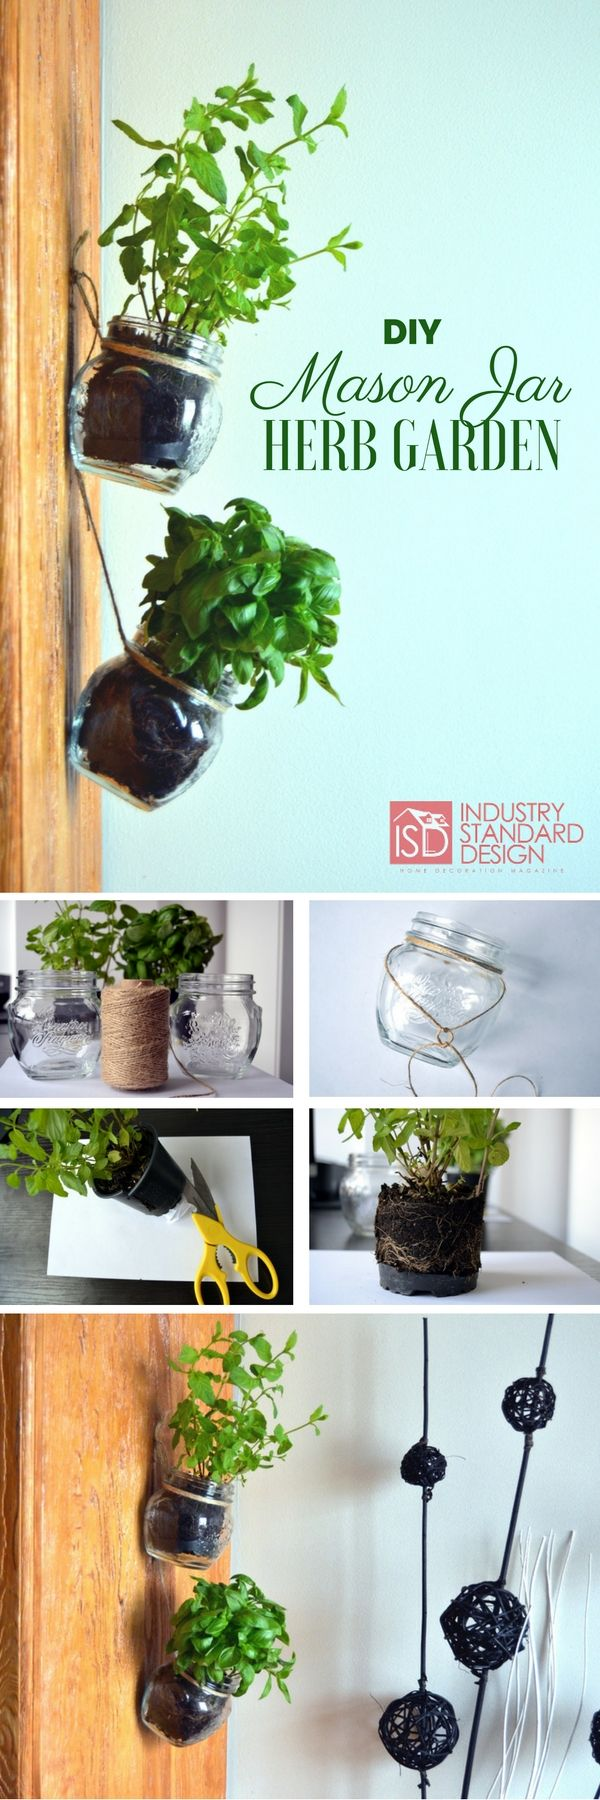 Check out the tutorial: #DIY Hanging Mason Jar Herb Garden @istandarddesign